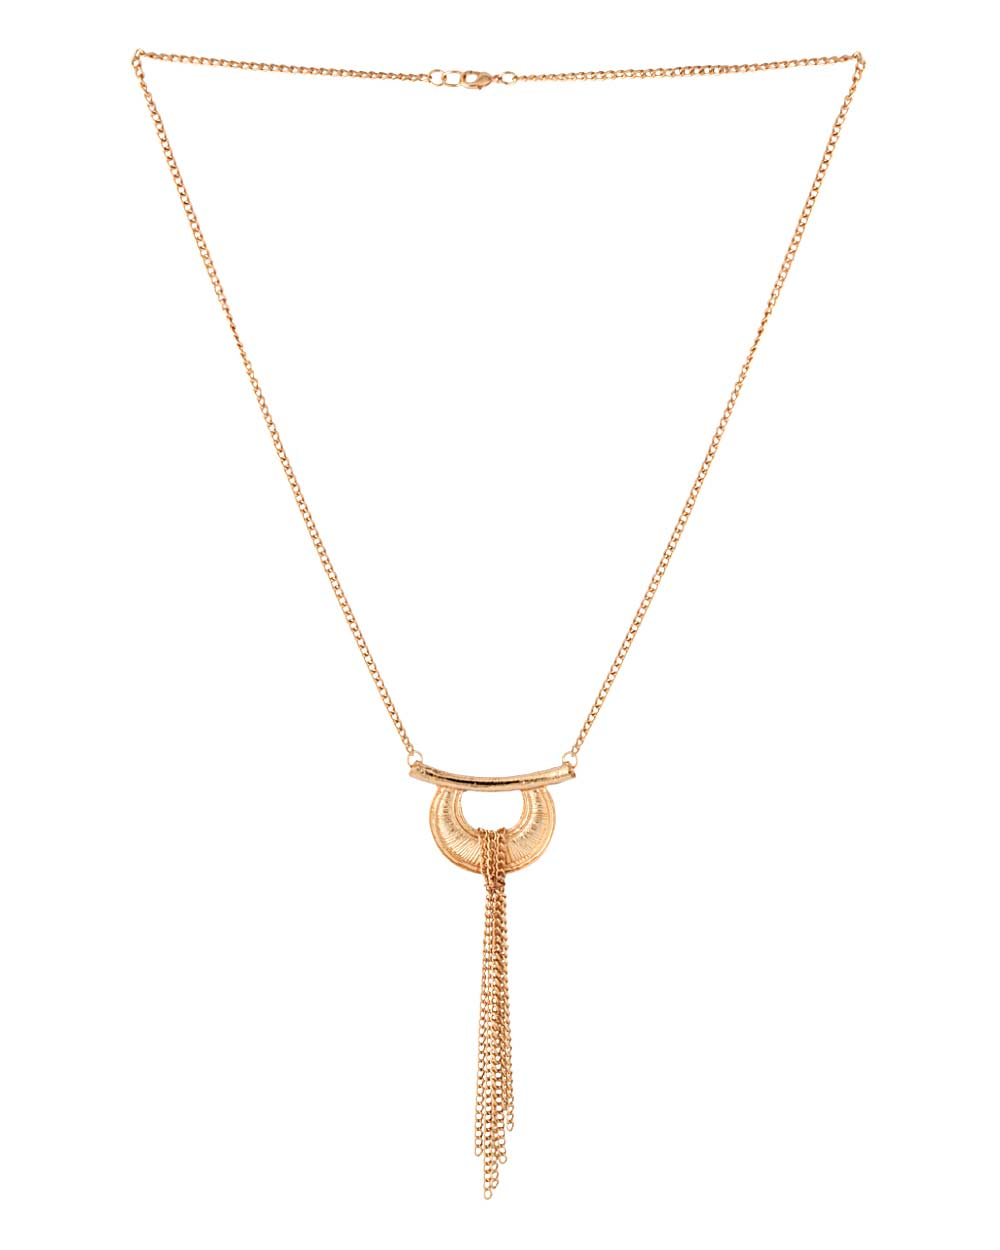 Pendant Necklace Studded With Tassels